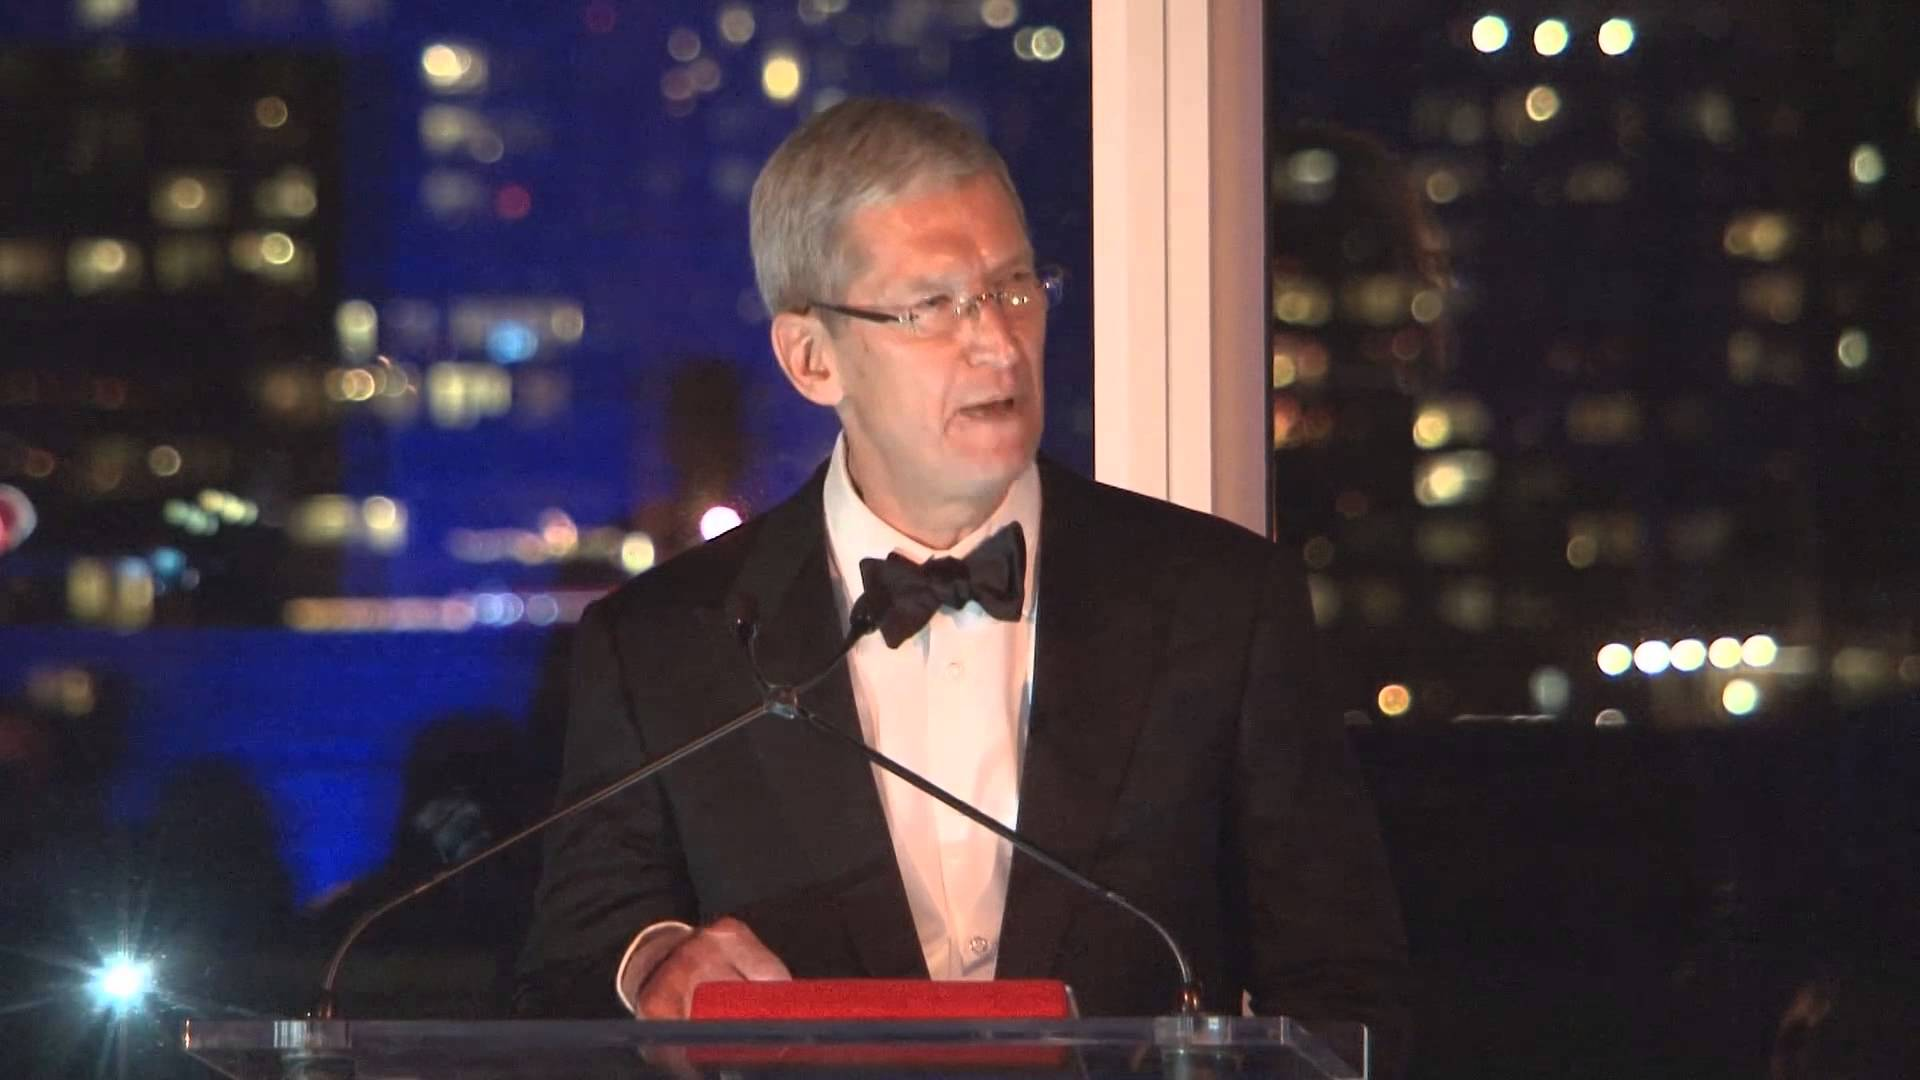 Tim cook led a movement to fight for human rights